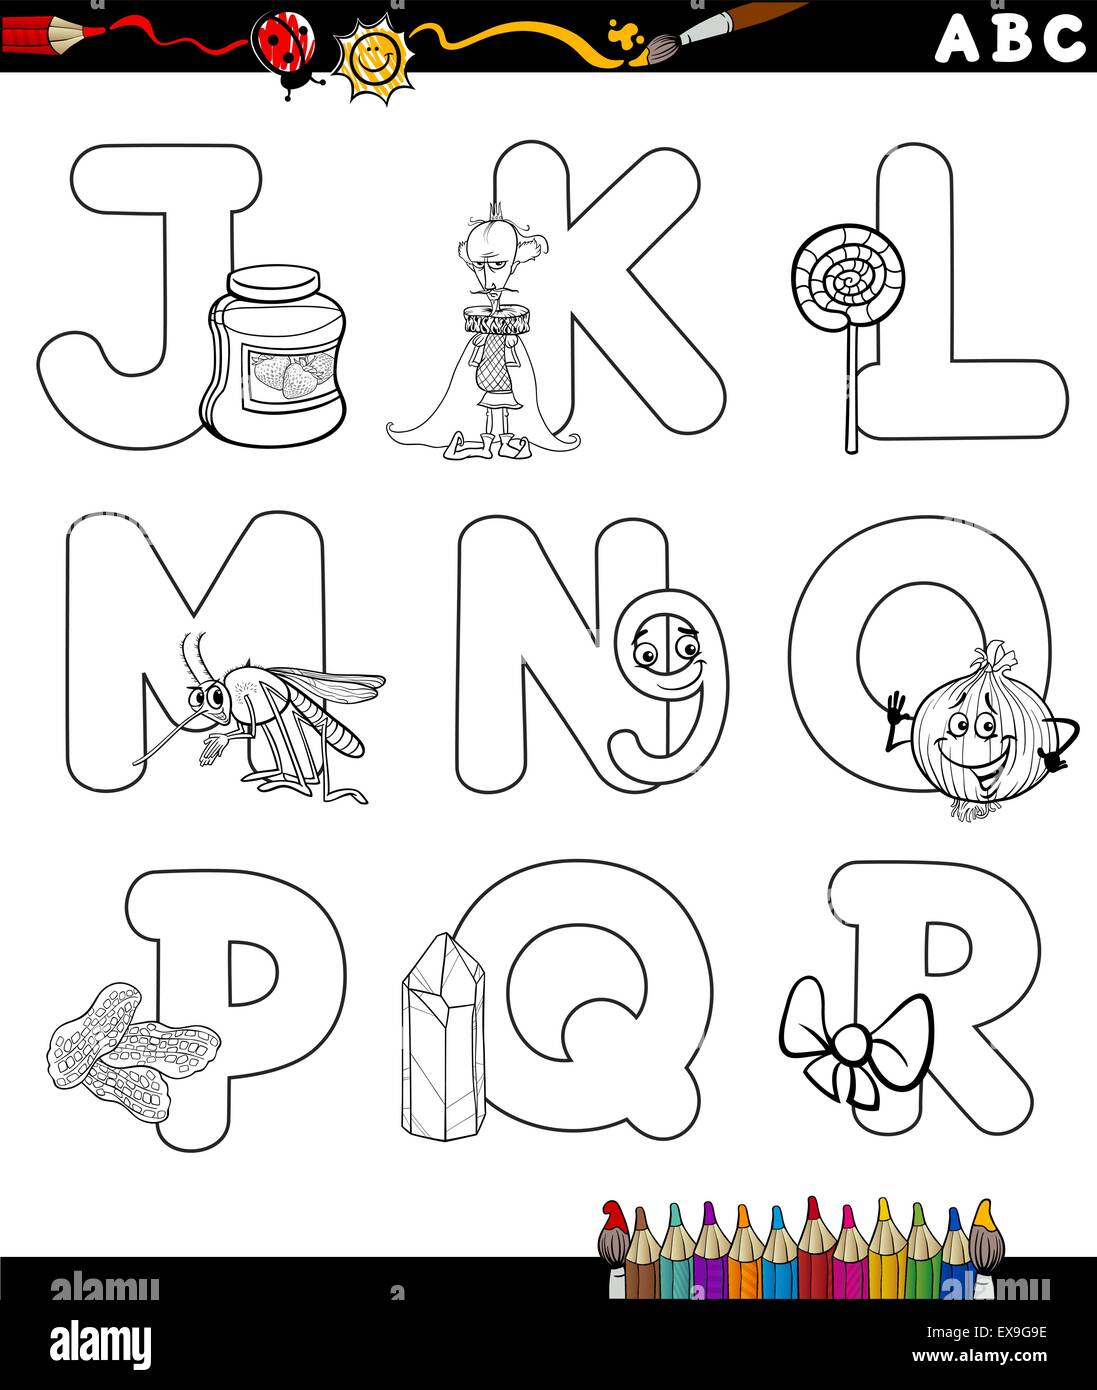 Black And White Cartoon Illustration Of Capital Letters Alphabet With Objects For Children Education From J To R Coloring Bo